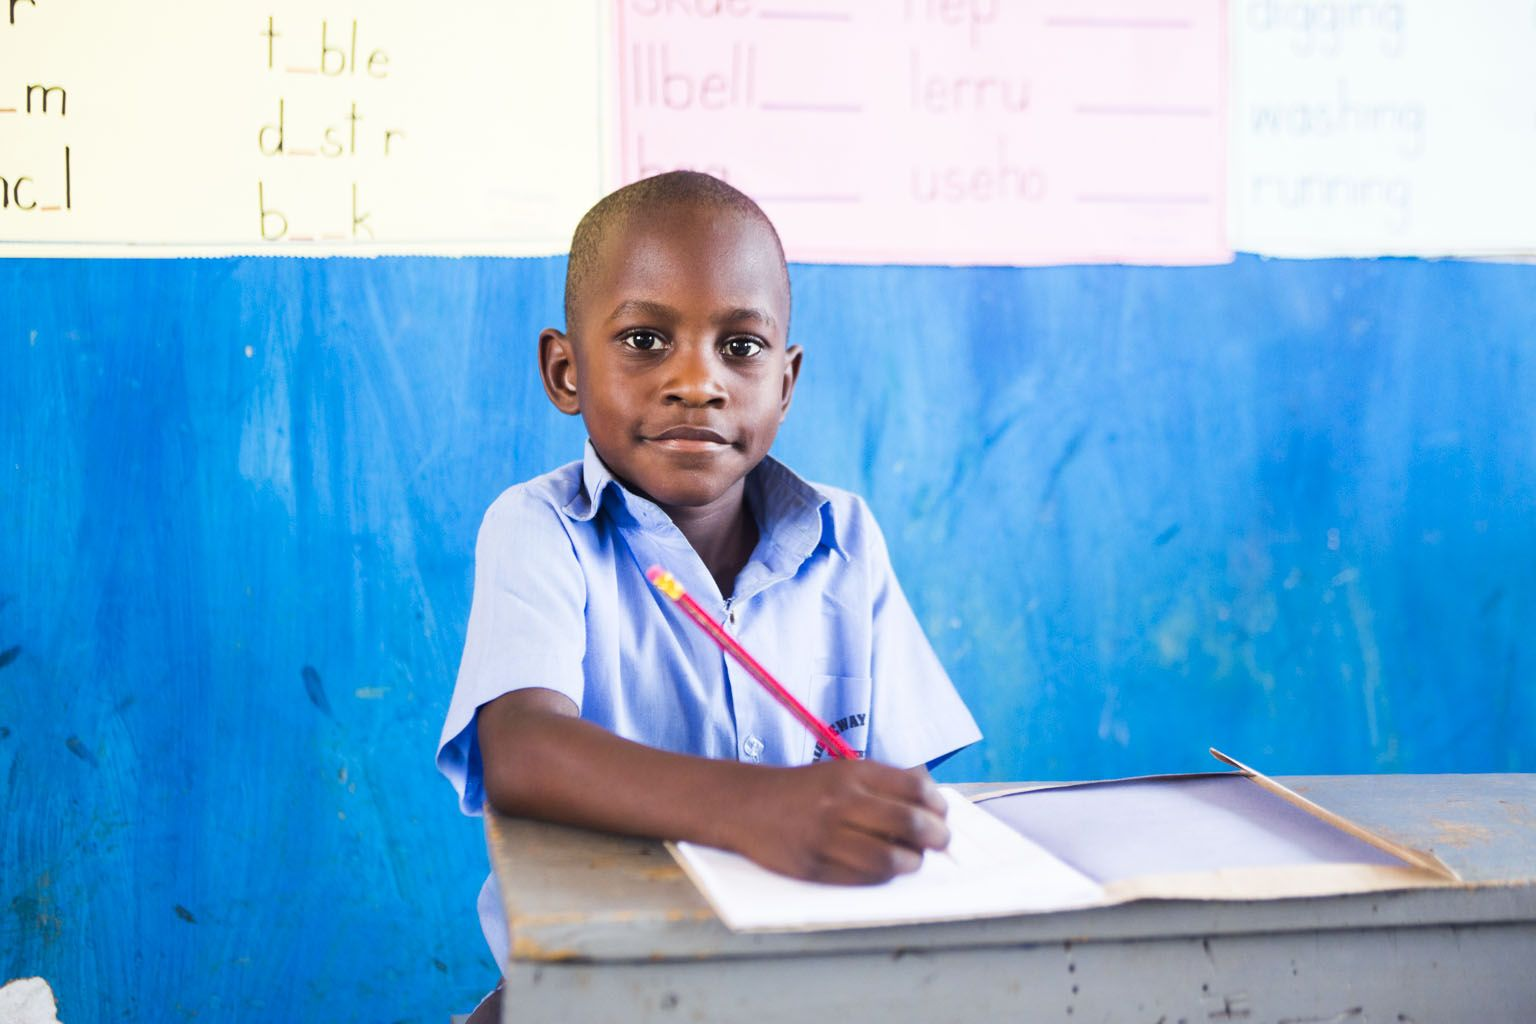 At opportunity international we believe that every child